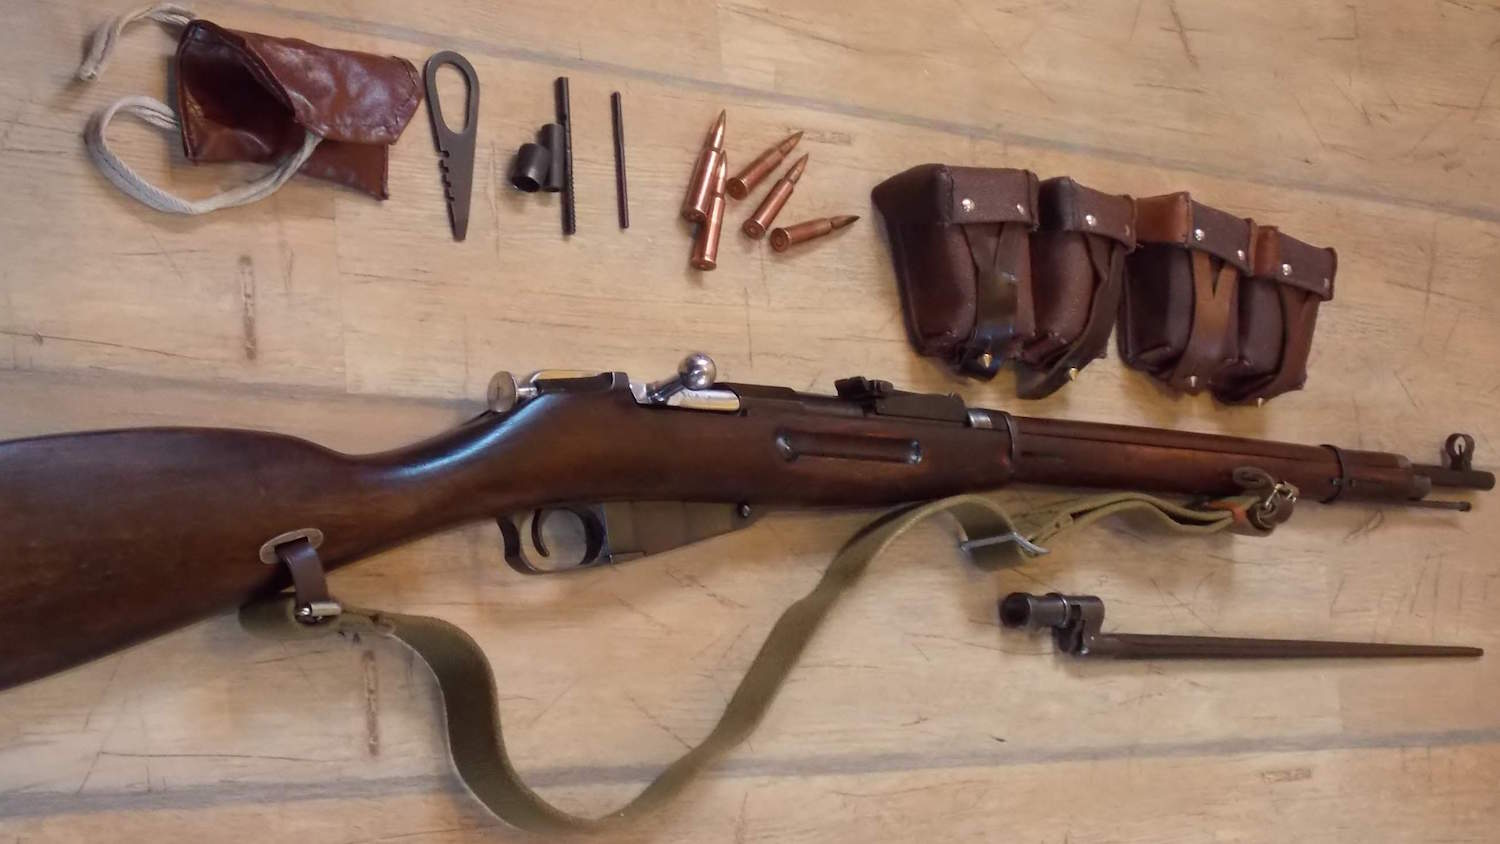 The Mosin-Nagant: Russia's Other Legendary Service Rifle